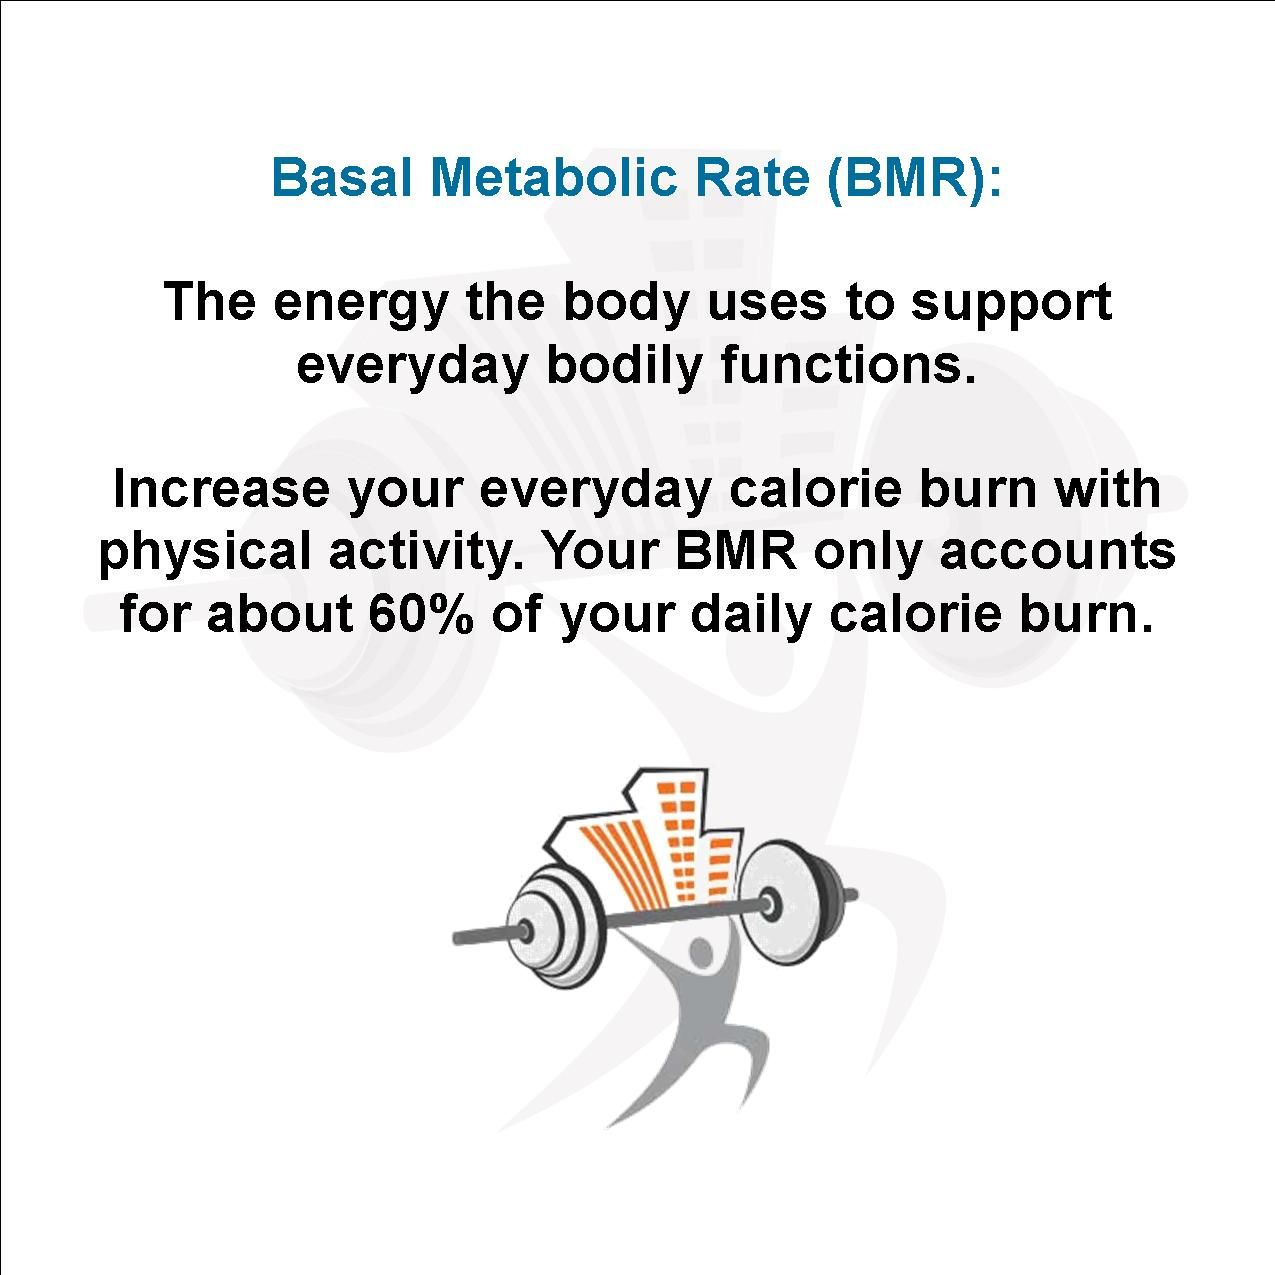 Basal Metabolic Rate Bmr The Energy The Body Uses To